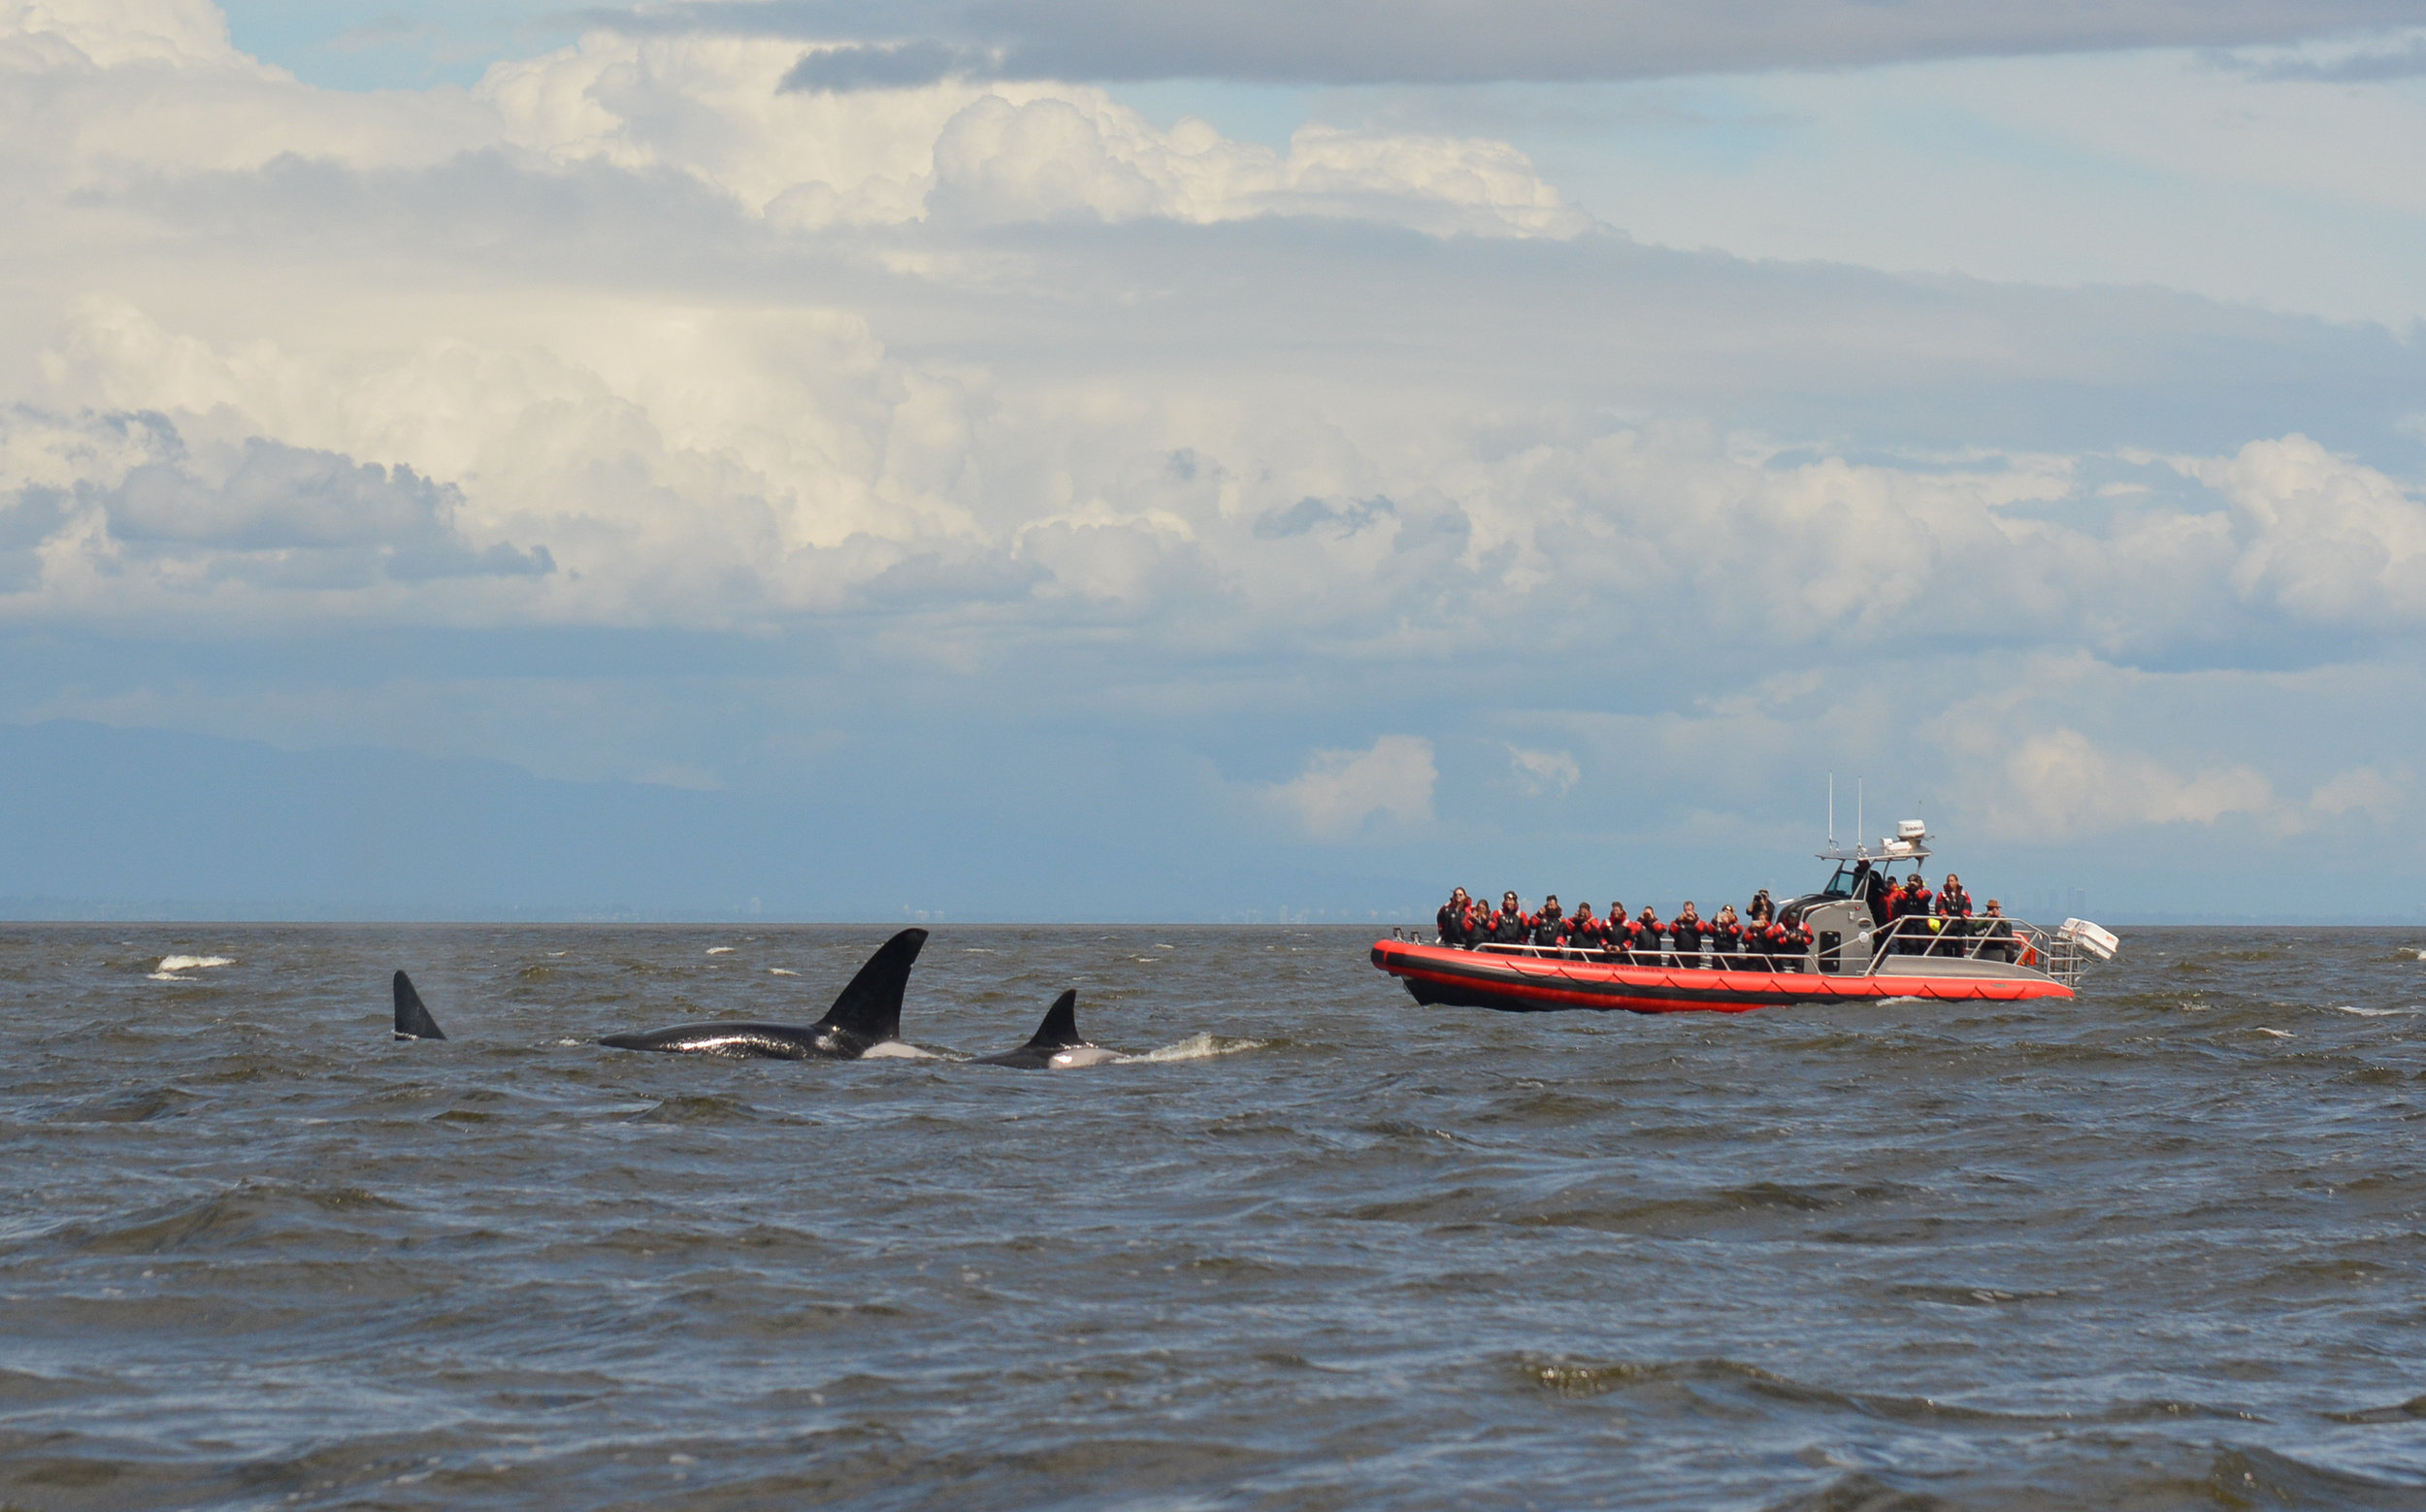 Another vessel full of excited onlookers! Photo by Val Watson